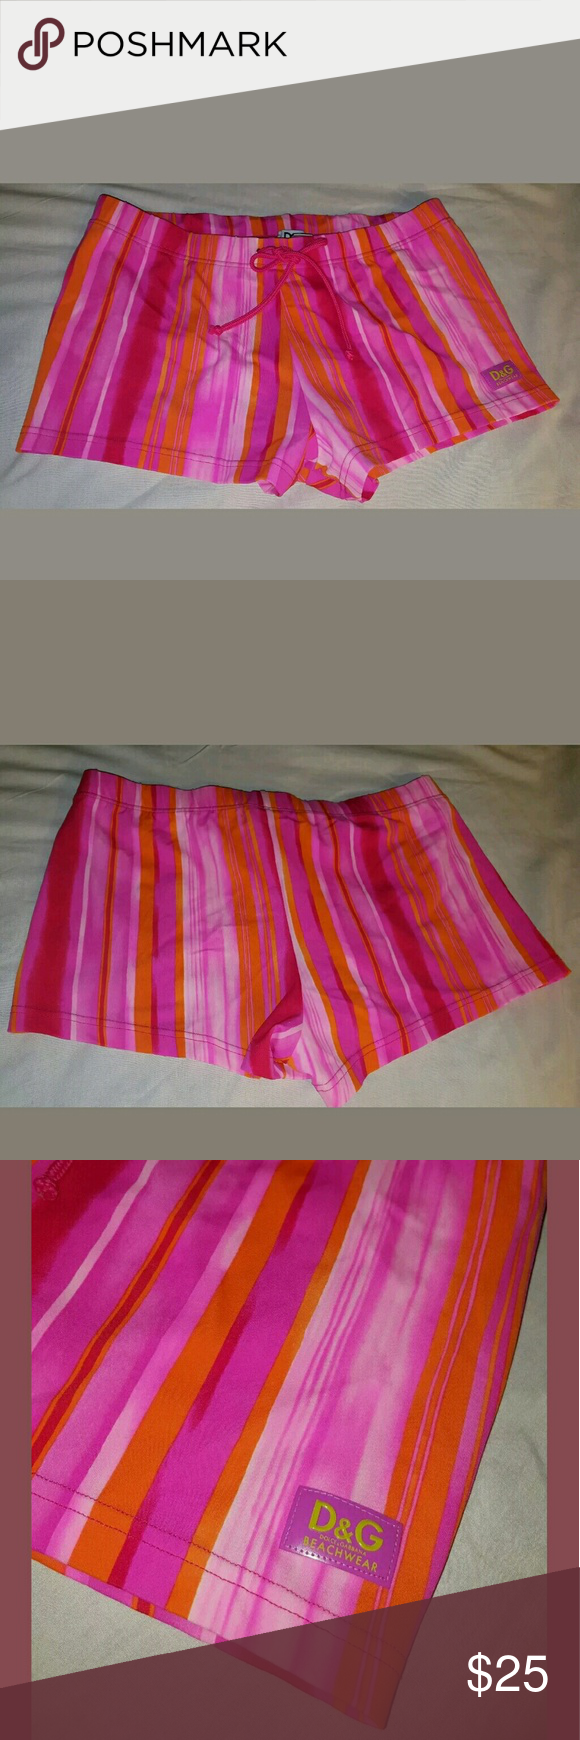 """Dolce Gabbana swim shorts Cute D&G swim short in good condition. Pink and orange stripes, adjustable string on the waist.   Measurements are approximate, lying flat not stretch.       Across waist 14""""      Rise 7 1/5""""         Inseam 2"""" Dolce & Gabbana Swim One Pieces"""